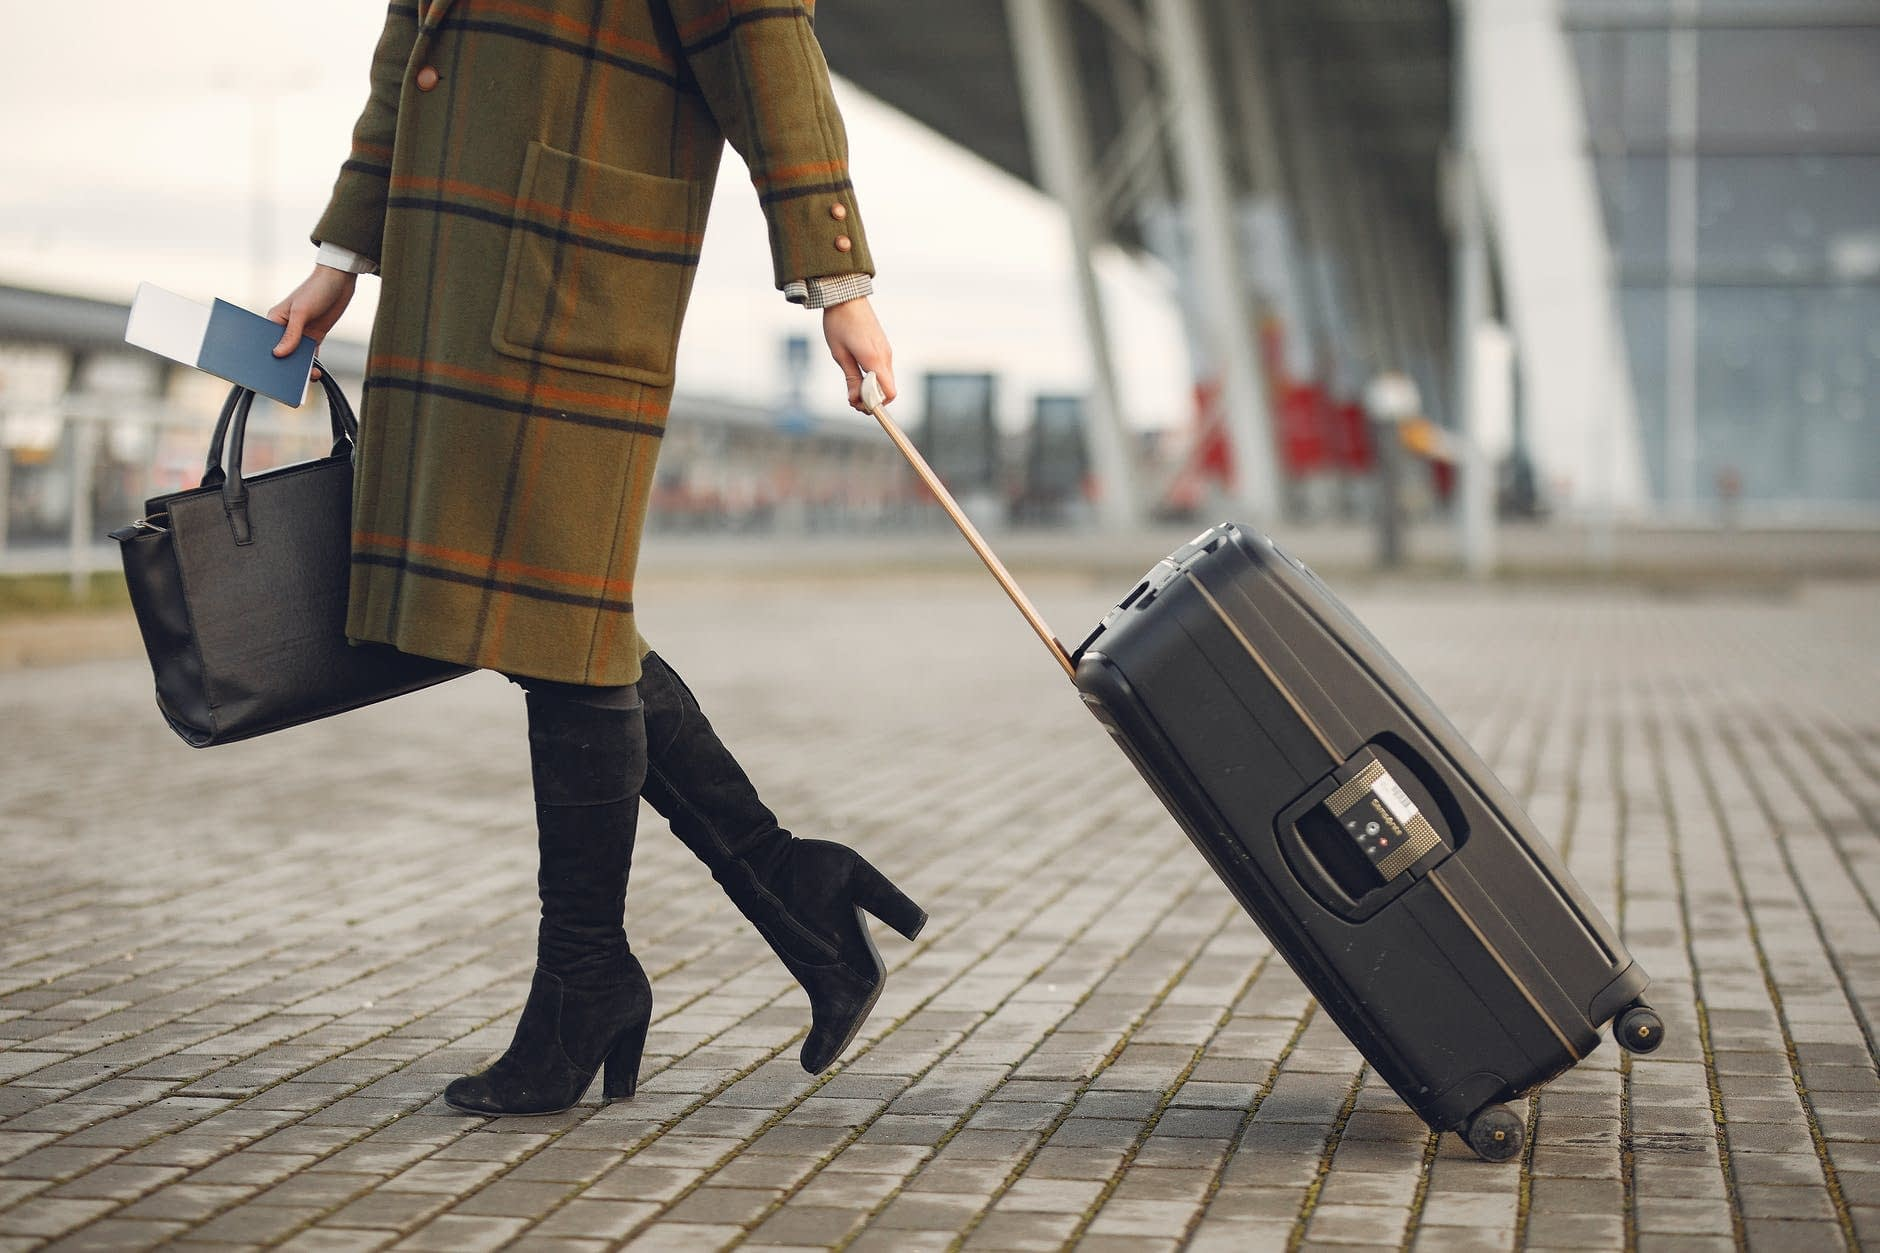 Duffel versus Rolling Luggage: Best Luggage for Summer Travel 1